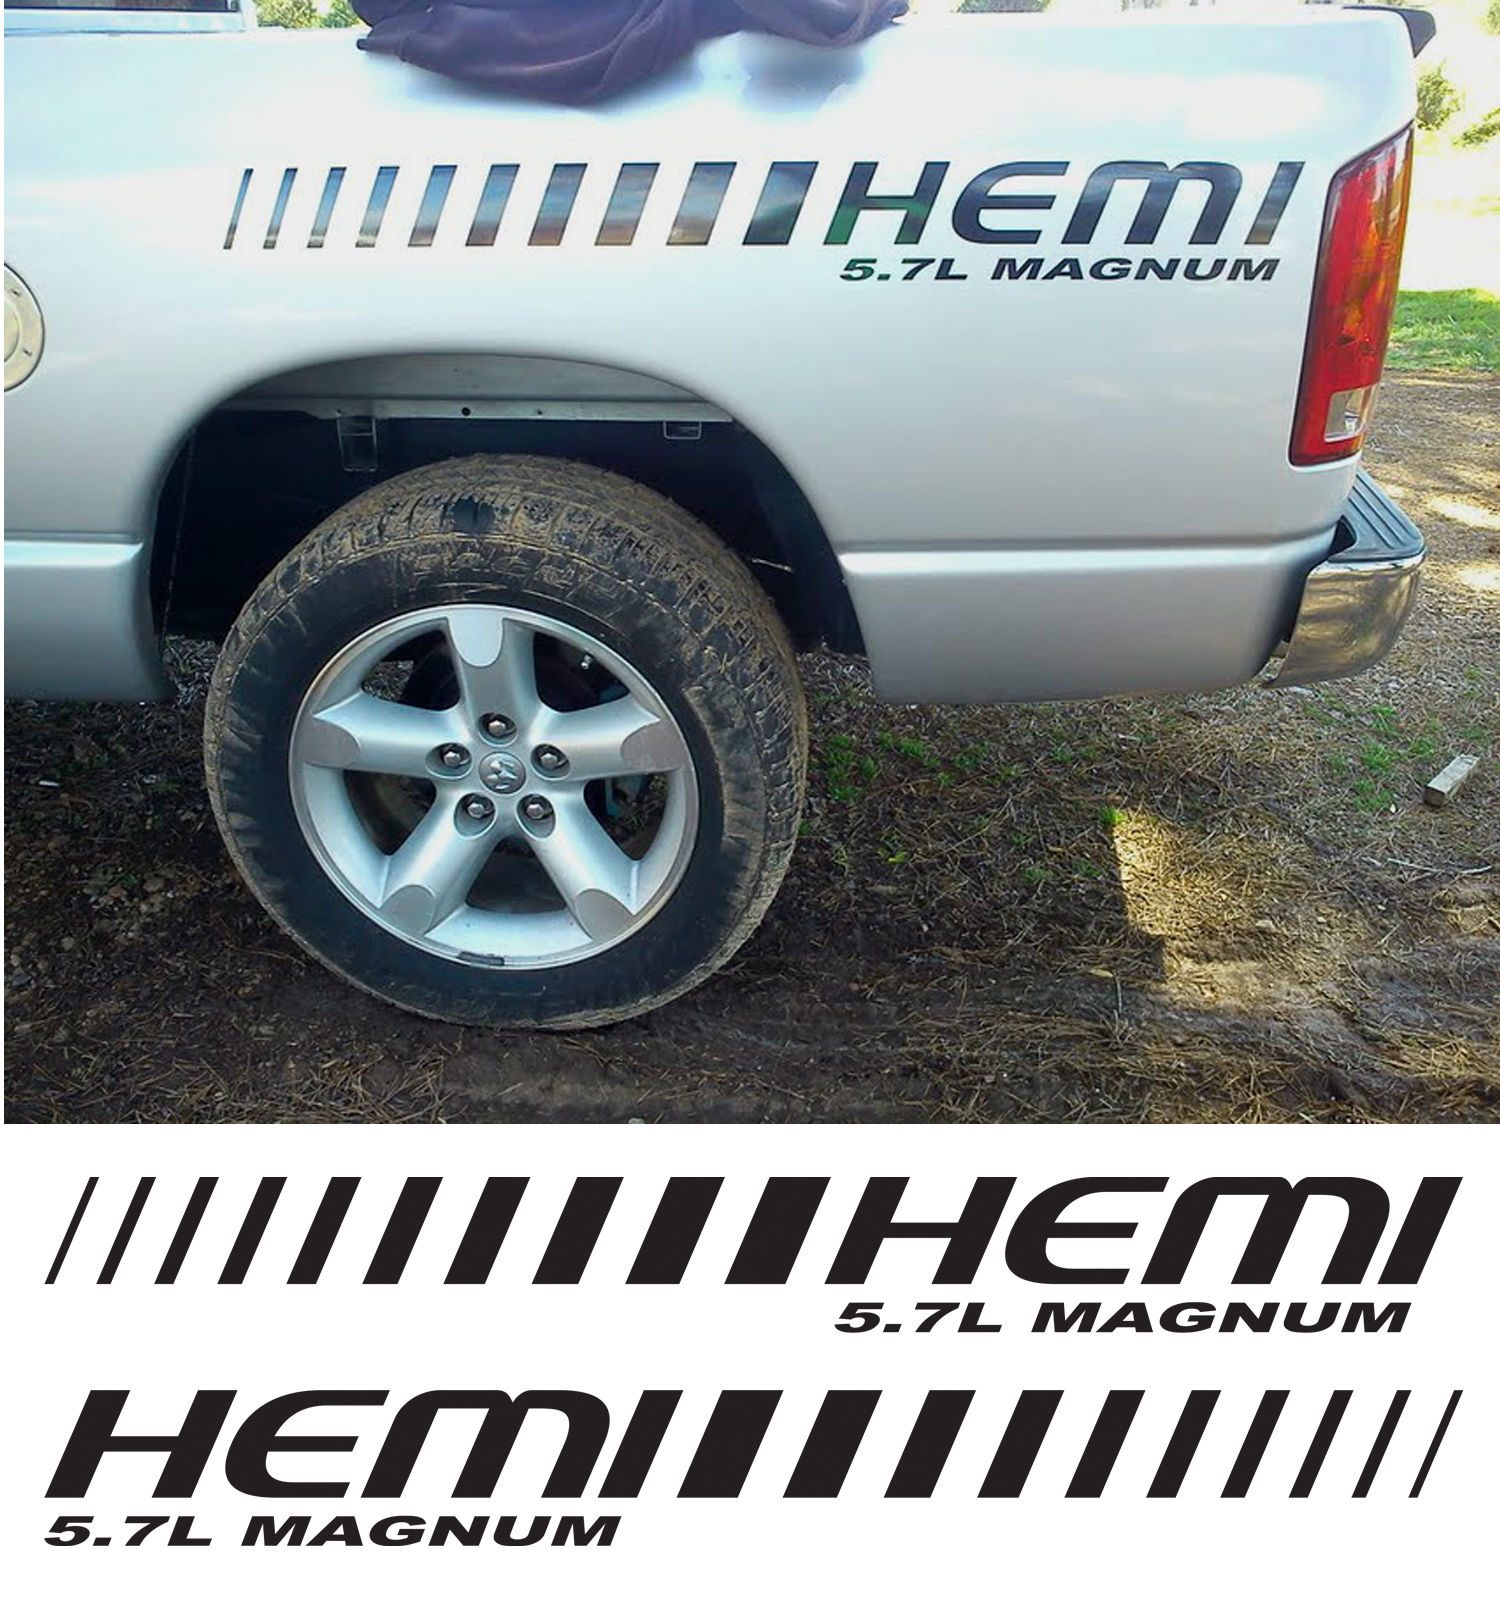 2 - Dodge HEMI 5.7 MAGNUM Ram Truck Decals Stickers